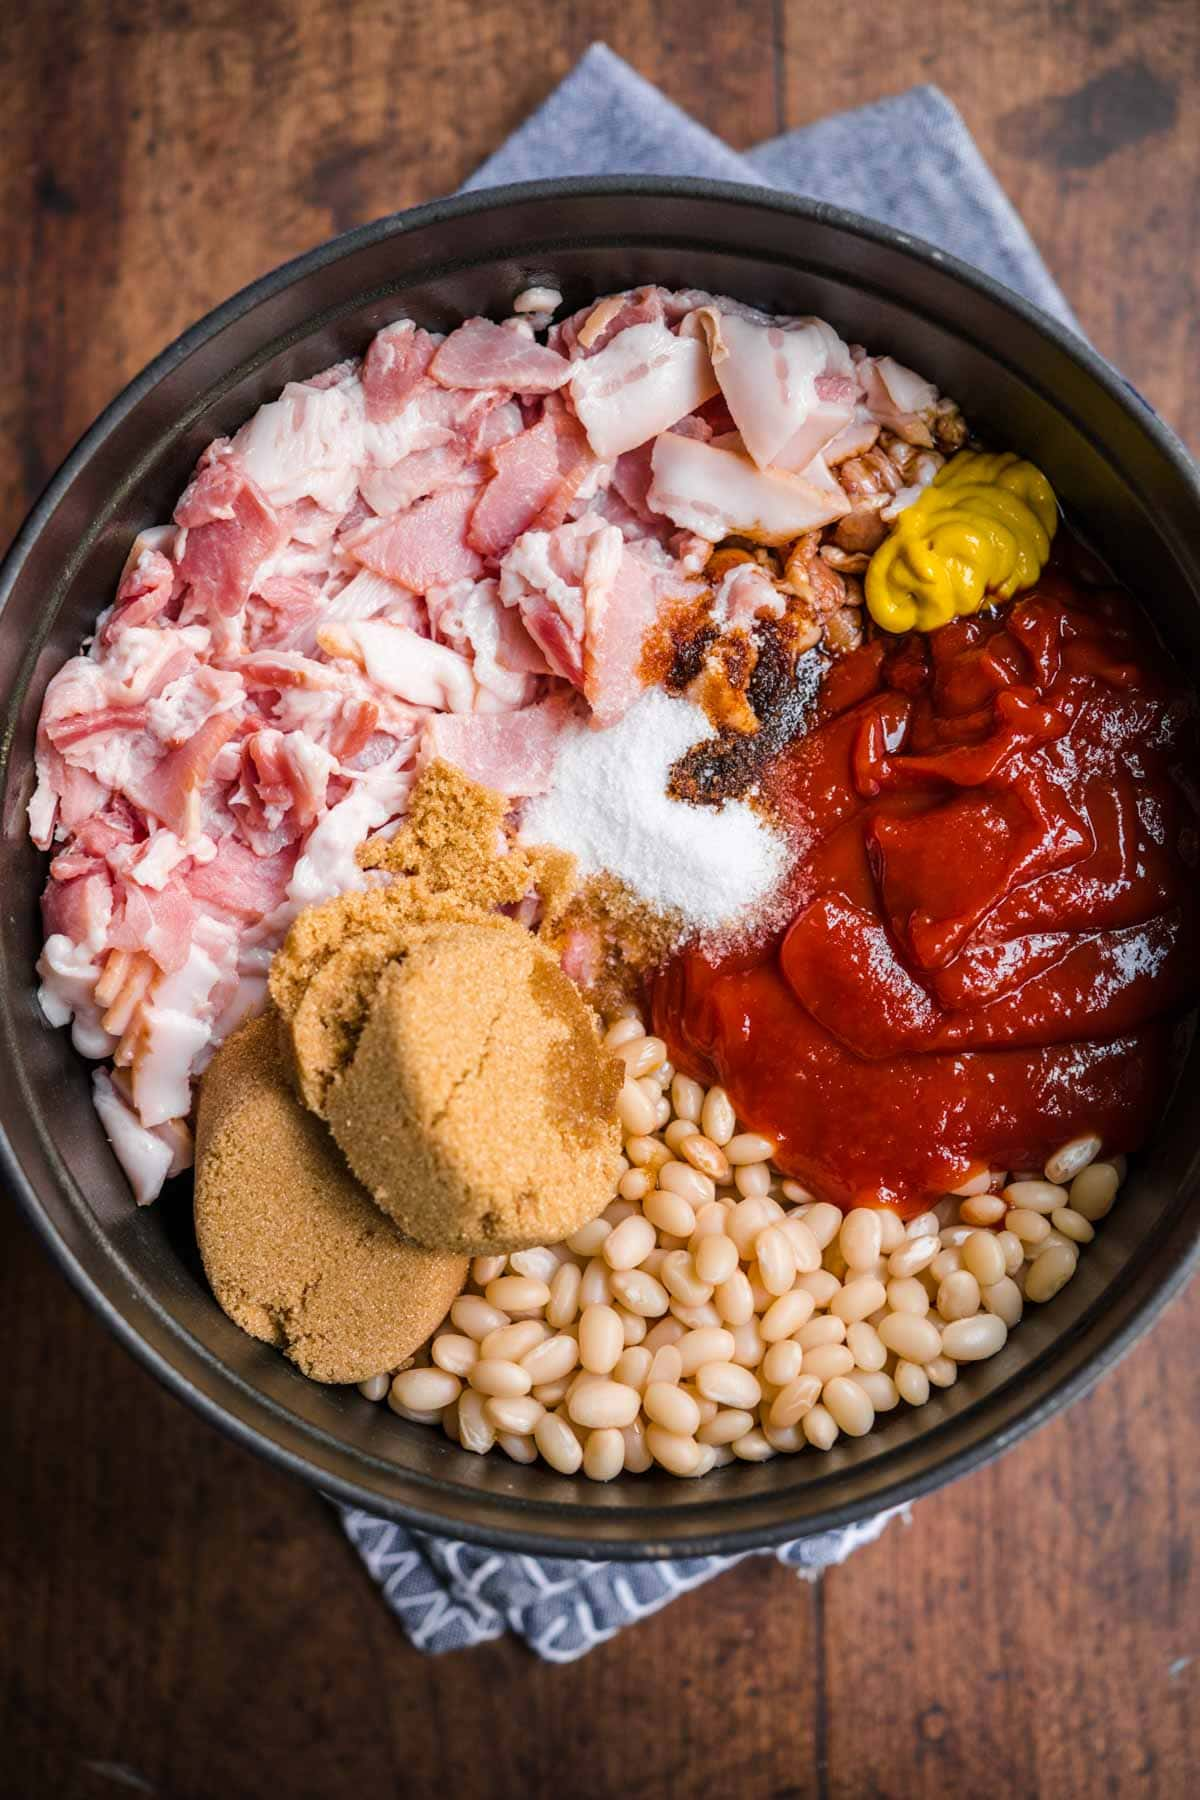 Homemade Pork and Beans ingredients in pot